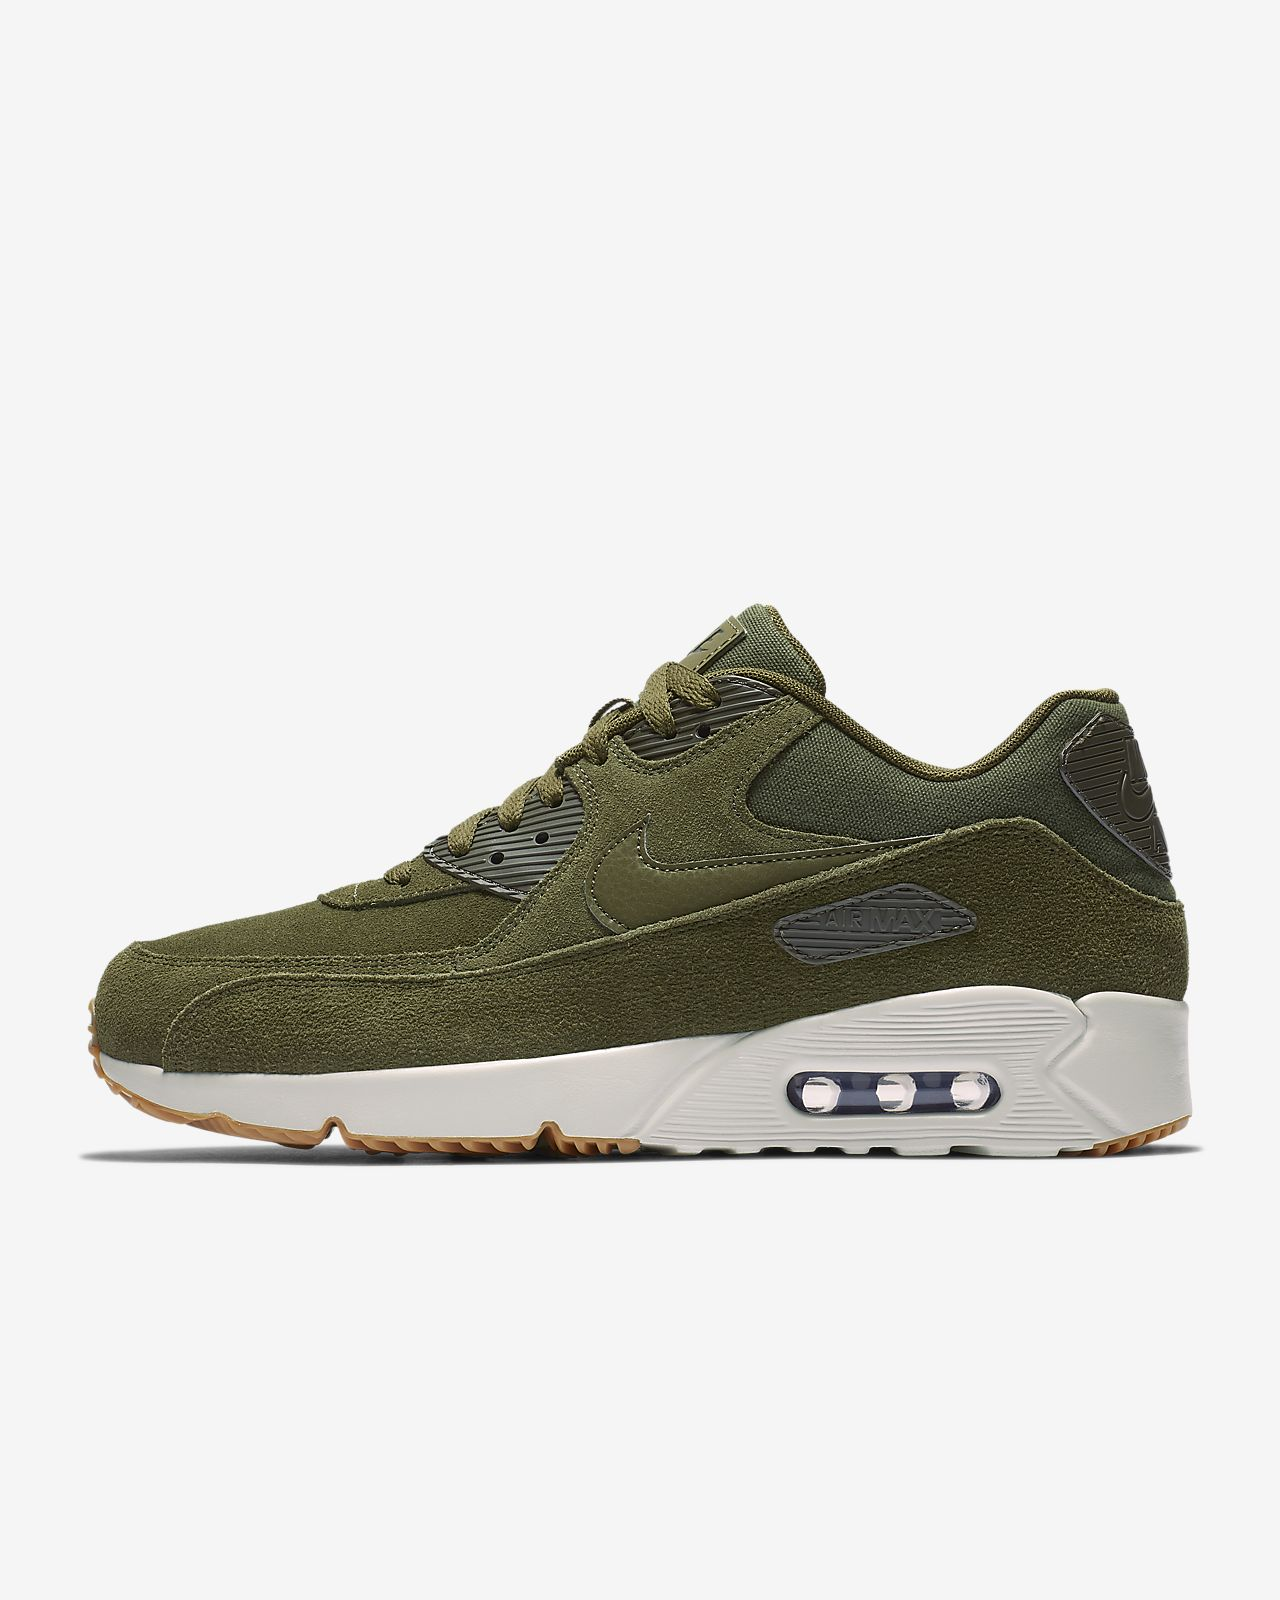 9acc08025a3512 Nike Air Max 90 Ultra 2.0 Men s Shoe. Nike.com